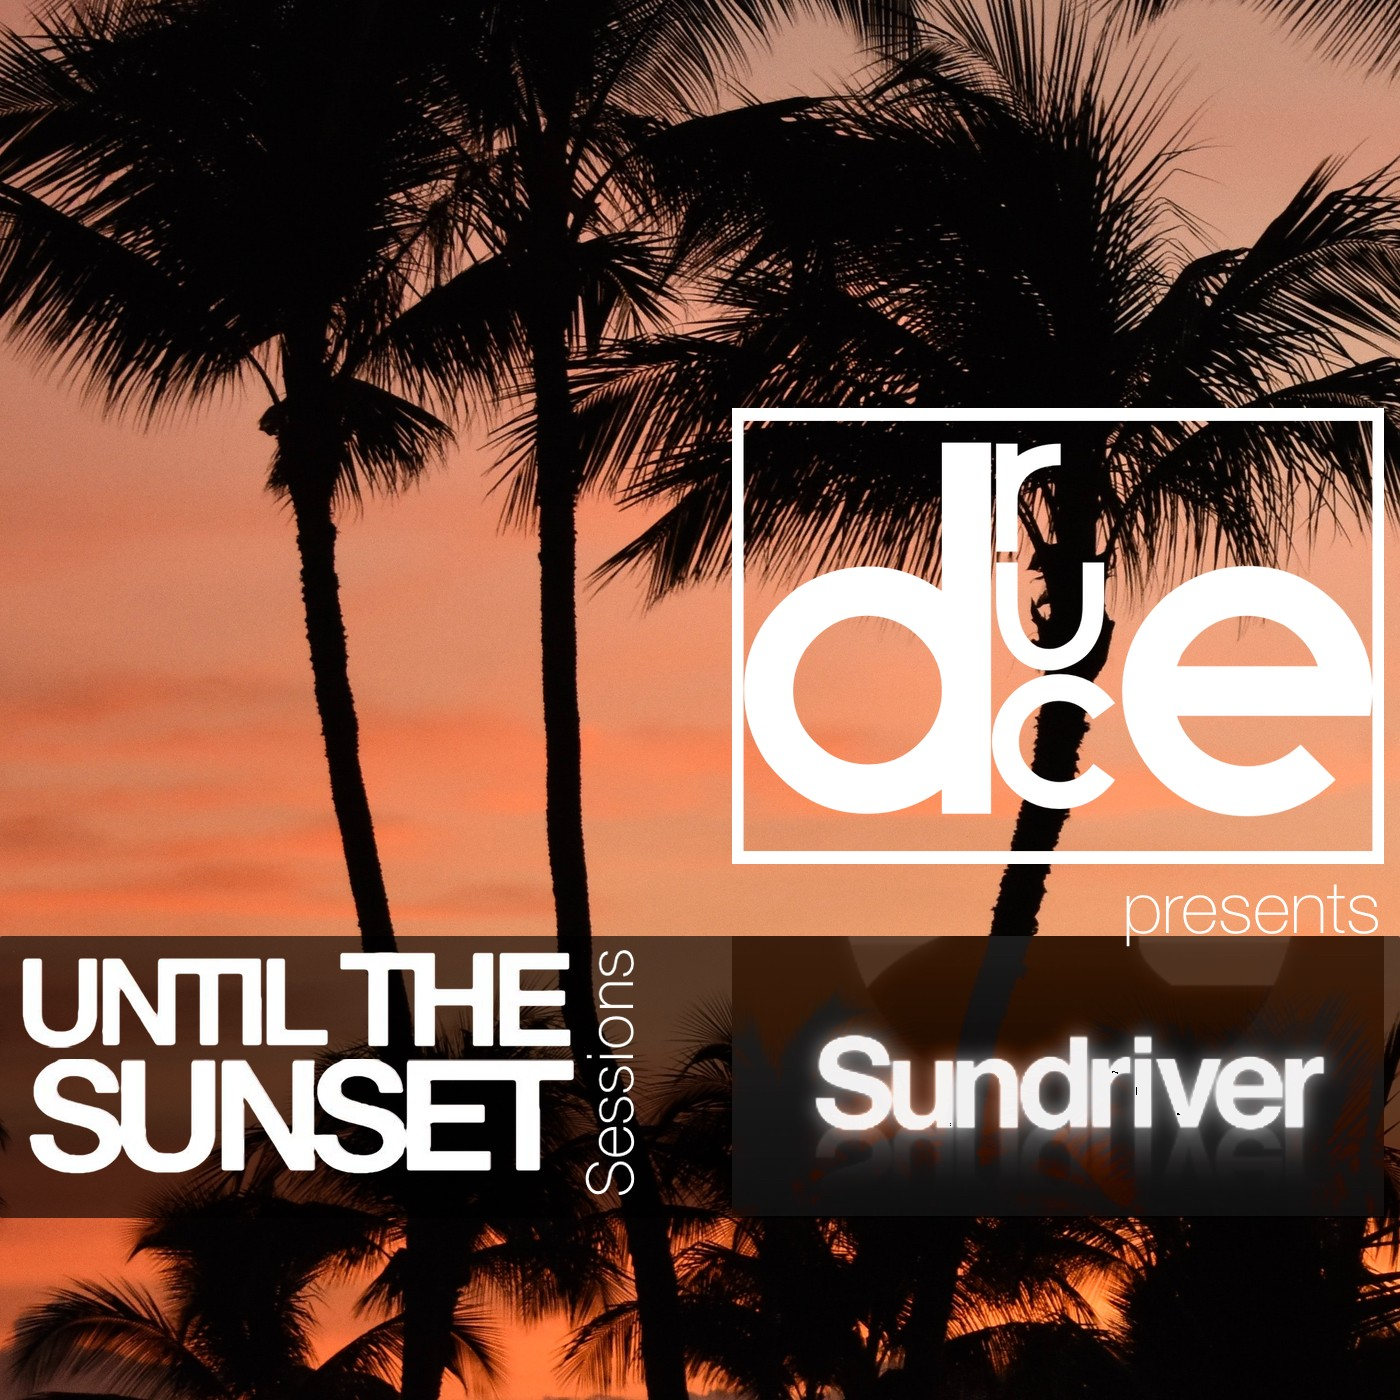 Until The Sunset Sessions presents Sundriver